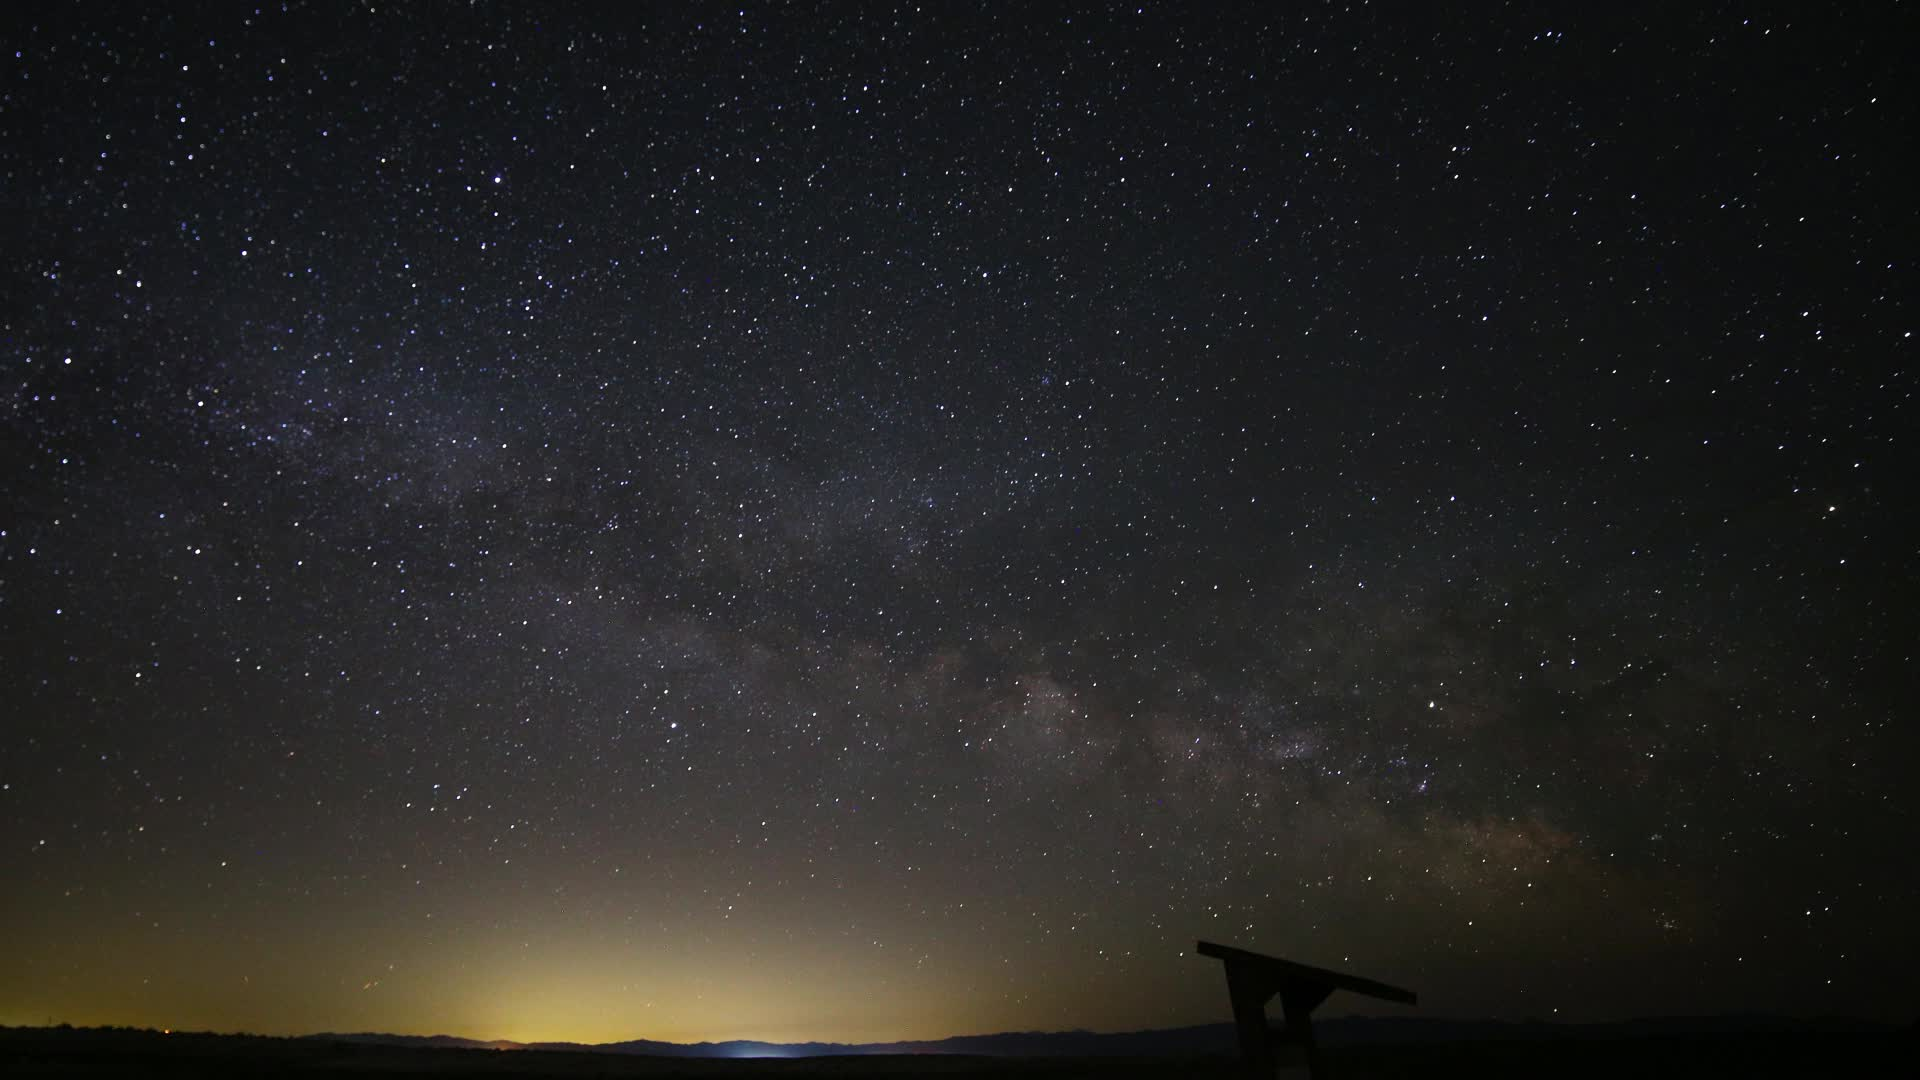 astrophotography, Milky Way GIFs